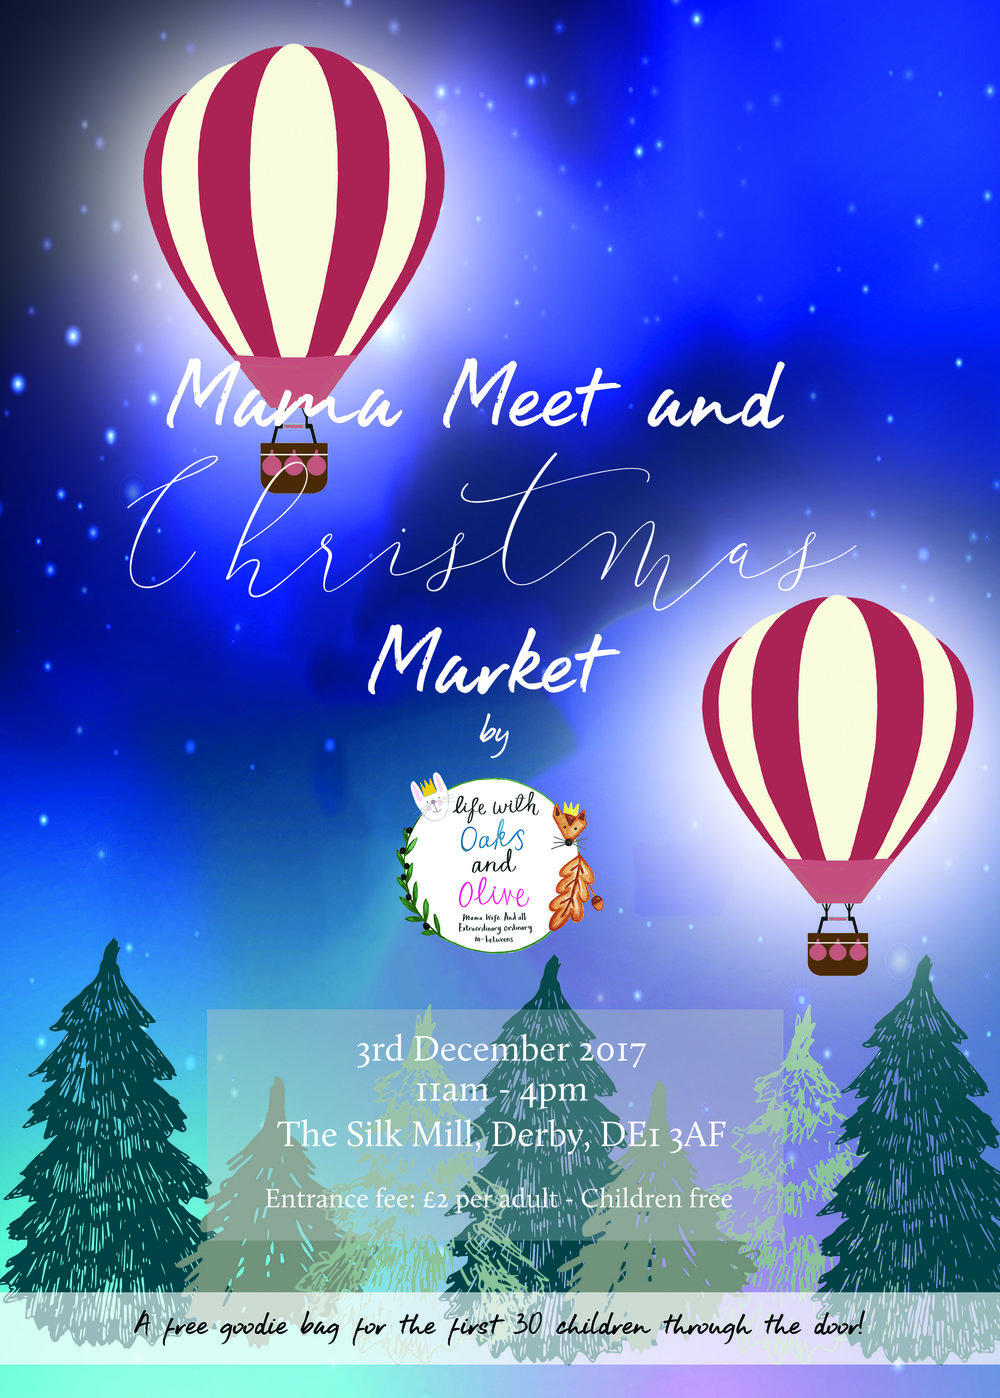 Christmas Market Flyer.jpg